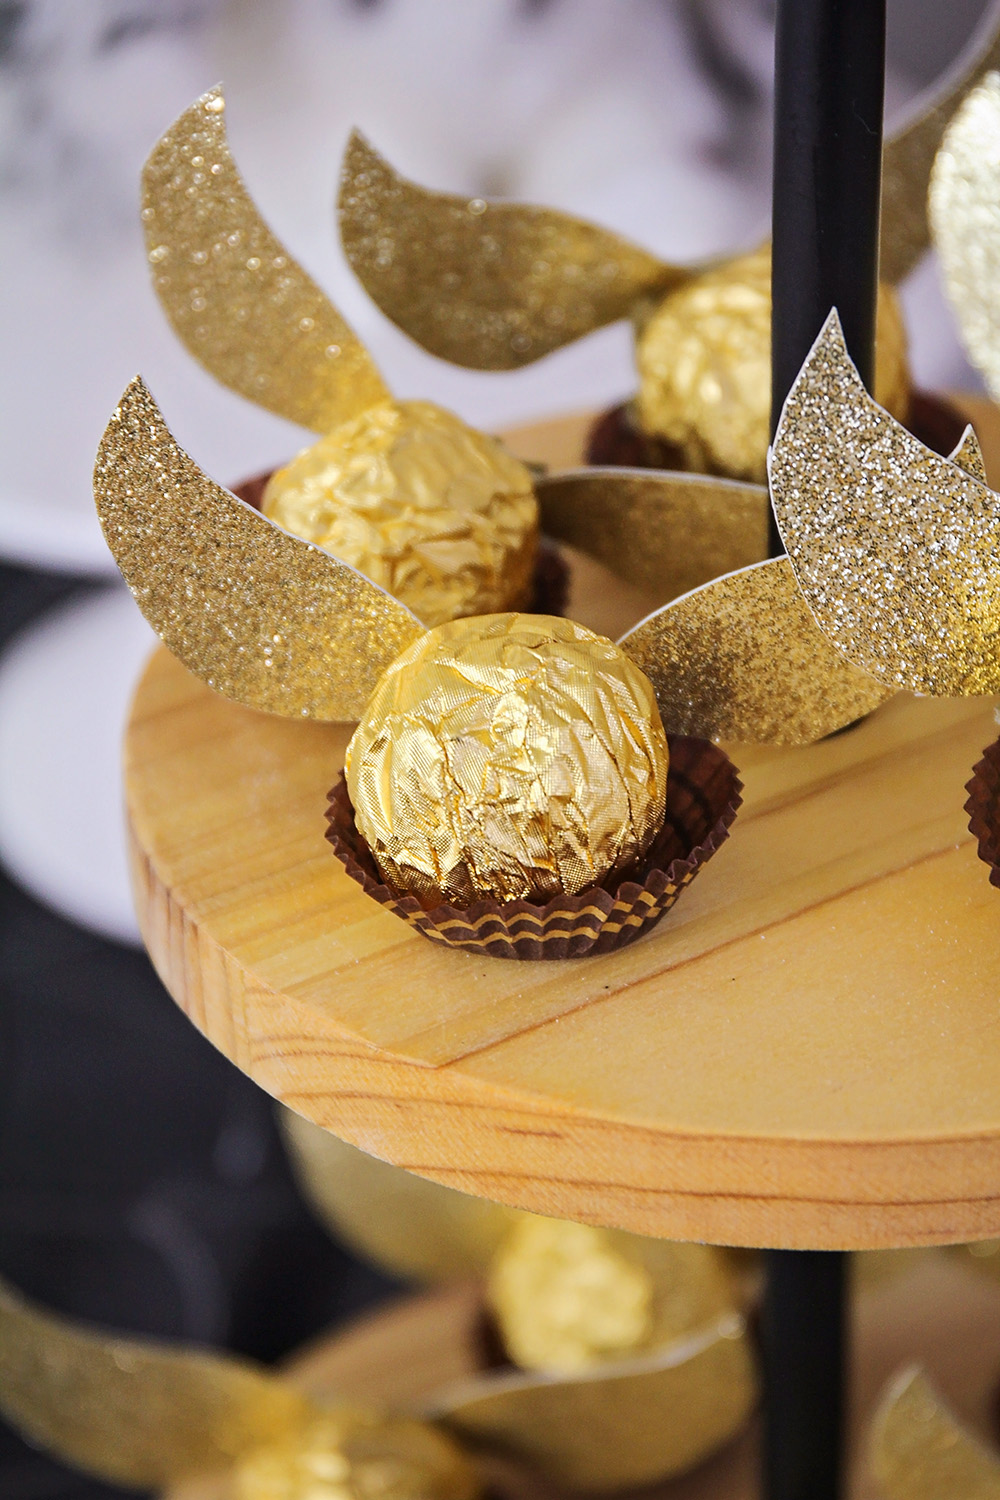 These adorable golden snitches are the perfect touch for a Harry Potter party. They're simple and quick to make, and add a little sparkle to the table!